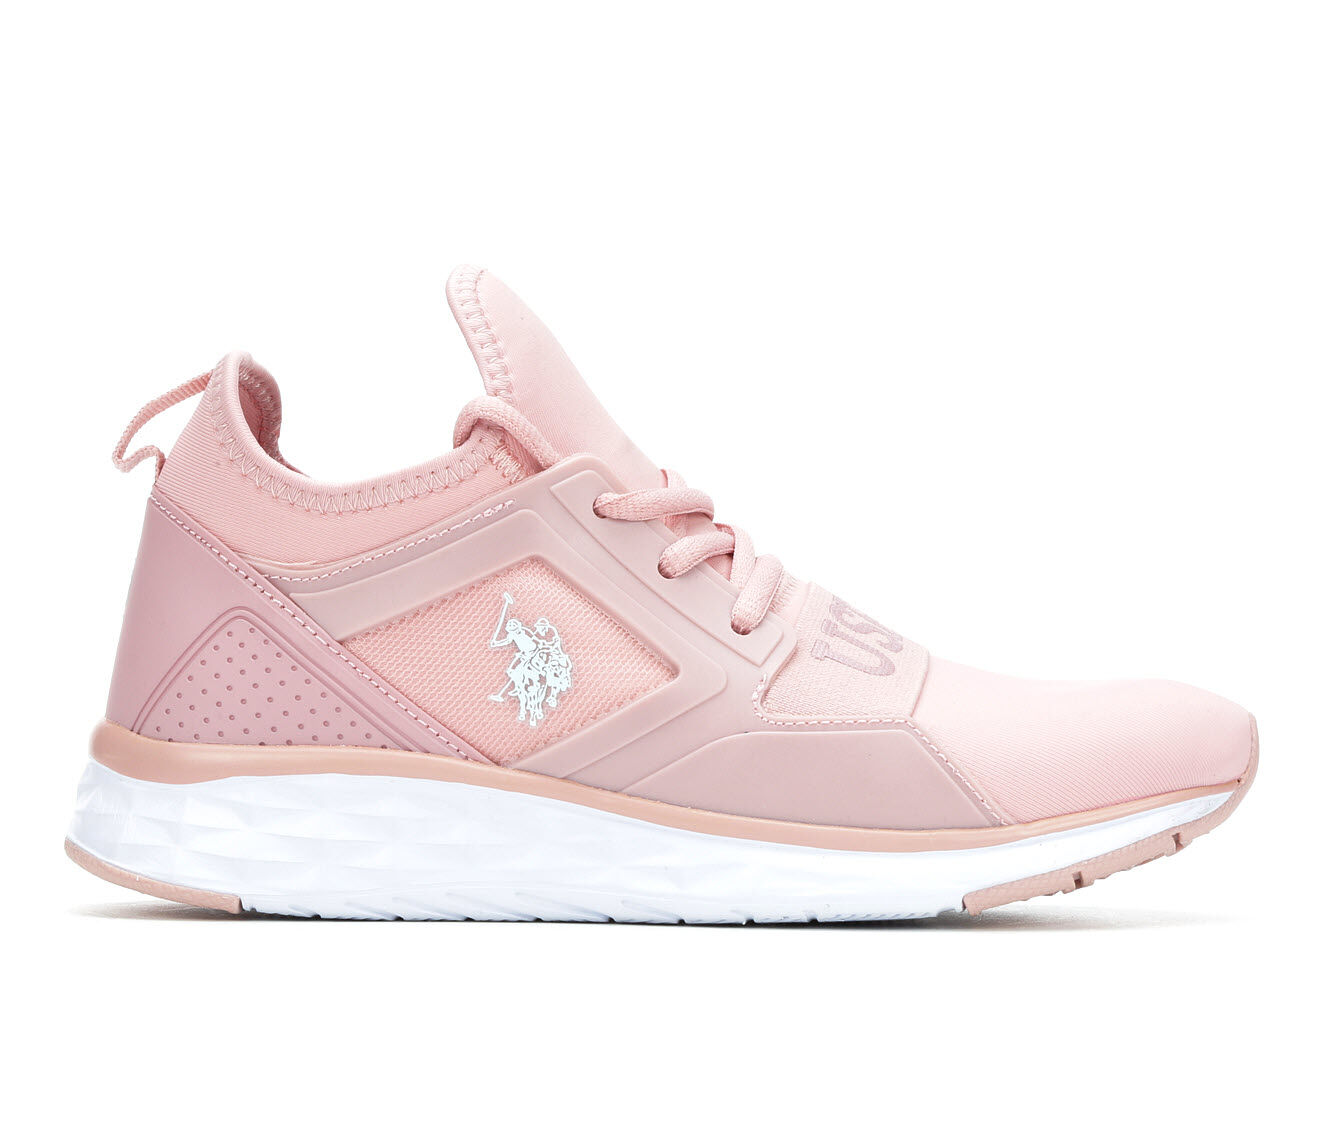 Quite Cool Women's US Polo Assn Jace Sneakers Blush/White